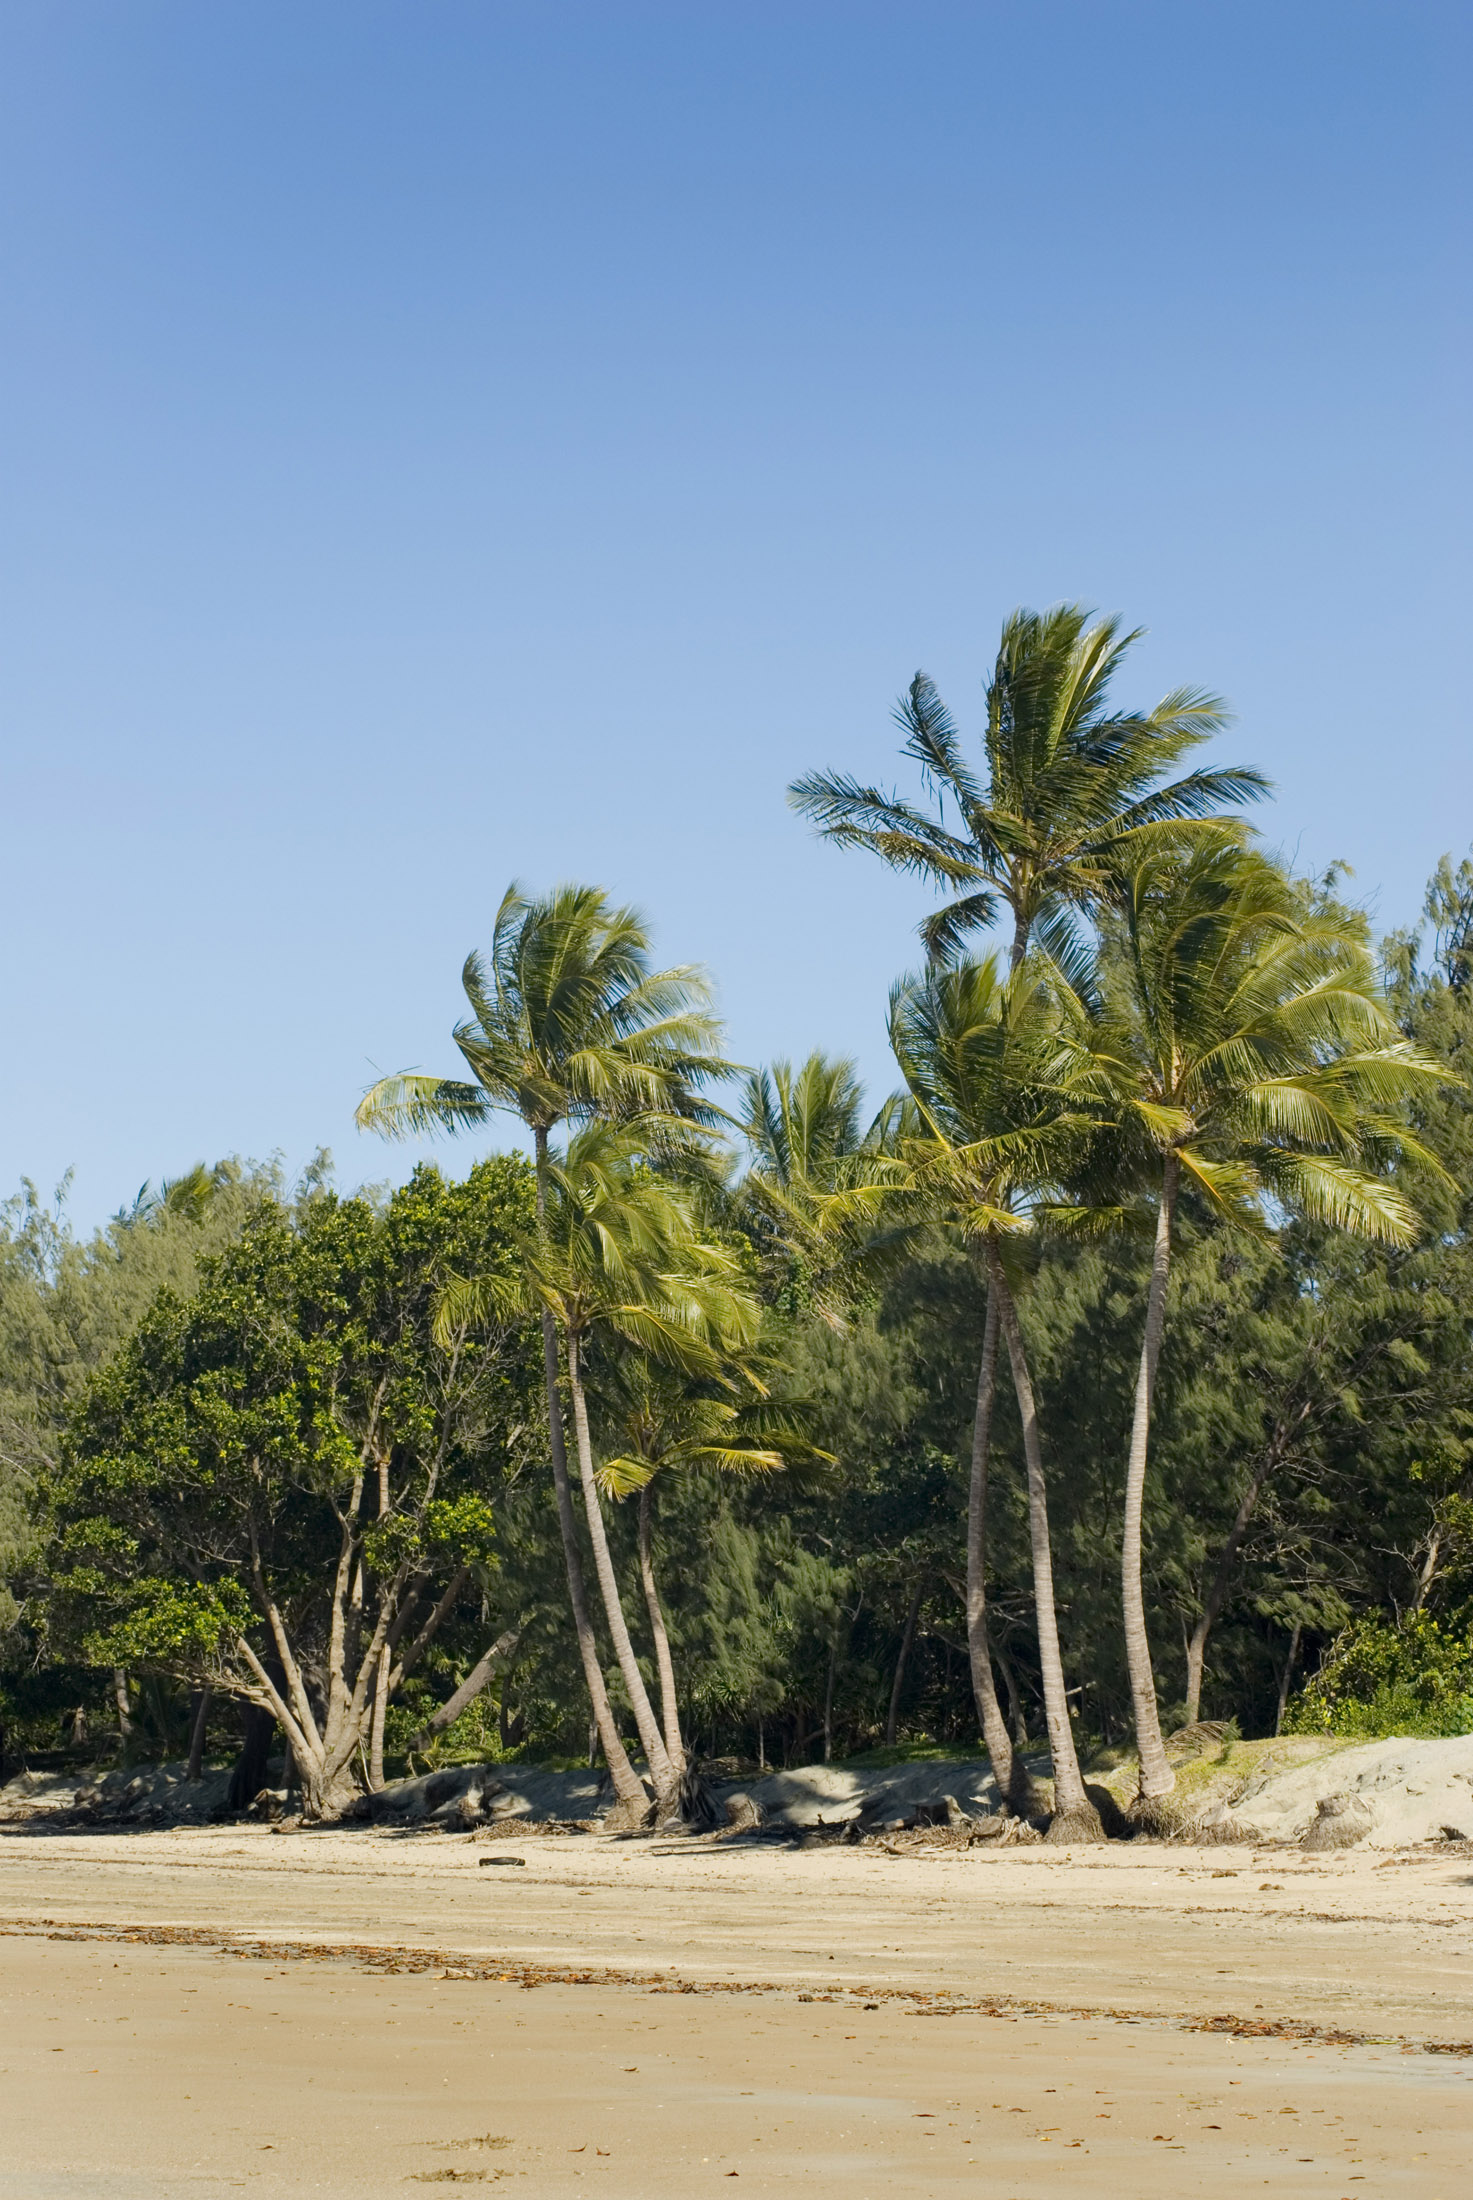 a wide sandy beach lined with palms and other tropical vegetation